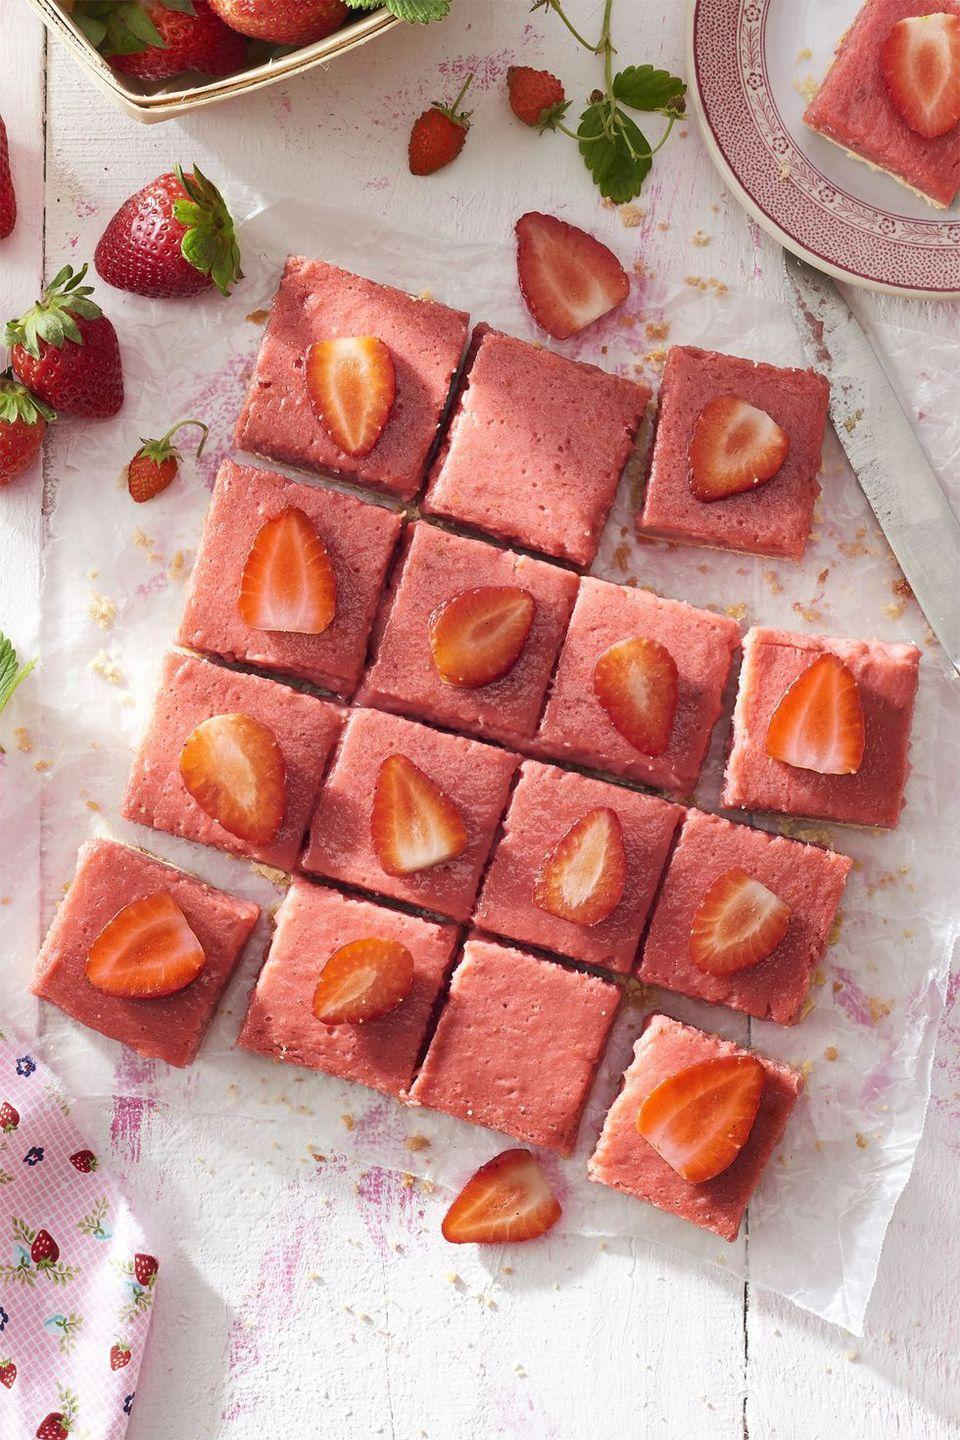 "<p>Use fresh or frozen rhubarb in these pretty and pink bars.</p><p><strong><a href=""https://www.countryliving.com/food-drinks/recipes/a41984/strawberry-rhubarb-shortbread-bars-recipe/"" rel=""nofollow noopener"" target=""_blank"" data-ylk=""slk:Get the recipe"" class=""link rapid-noclick-resp"">Get the recipe</a>.</strong></p><p><a class=""link rapid-noclick-resp"" href=""https://www.amazon.com/Hamilton-Beach-70730-Processor-Vegetable/dp/B008J8MJIQ/?tag=syn-yahoo-20&ascsubtag=%5Bartid%7C10050.g.1138%5Bsrc%7Cyahoo-us"" rel=""nofollow noopener"" target=""_blank"" data-ylk=""slk:SHOP FOOD PROCESSORS"">SHOP FOOD PROCESSORS</a></p>"